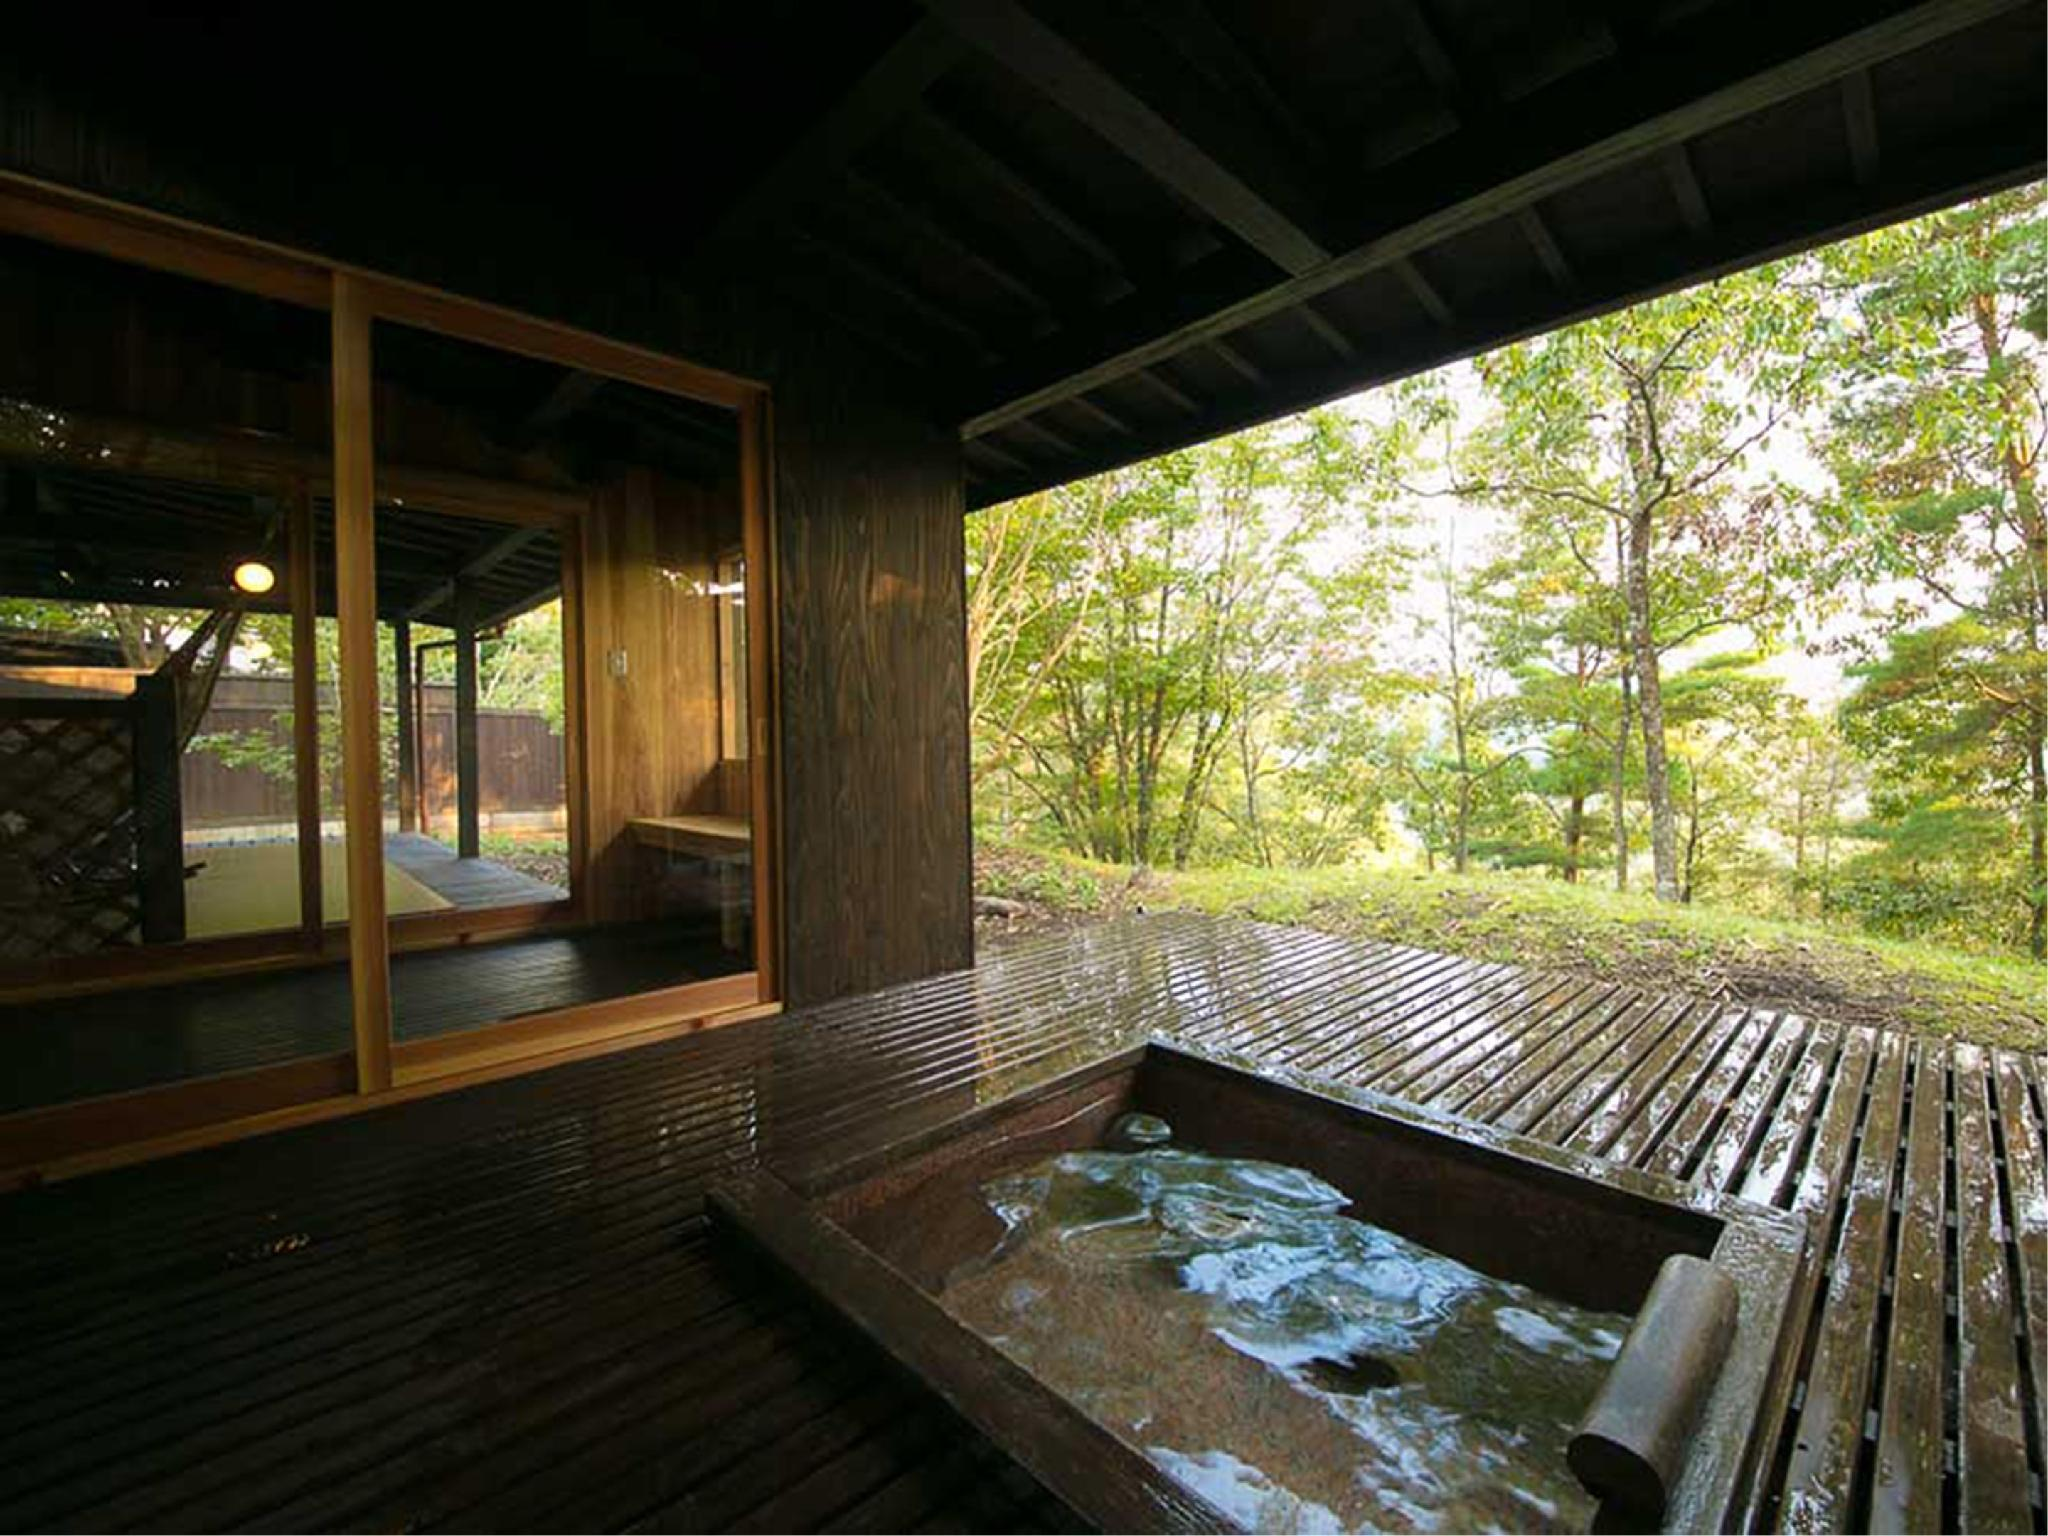 Detached Japanese/Western-style Room with Open-air Bath